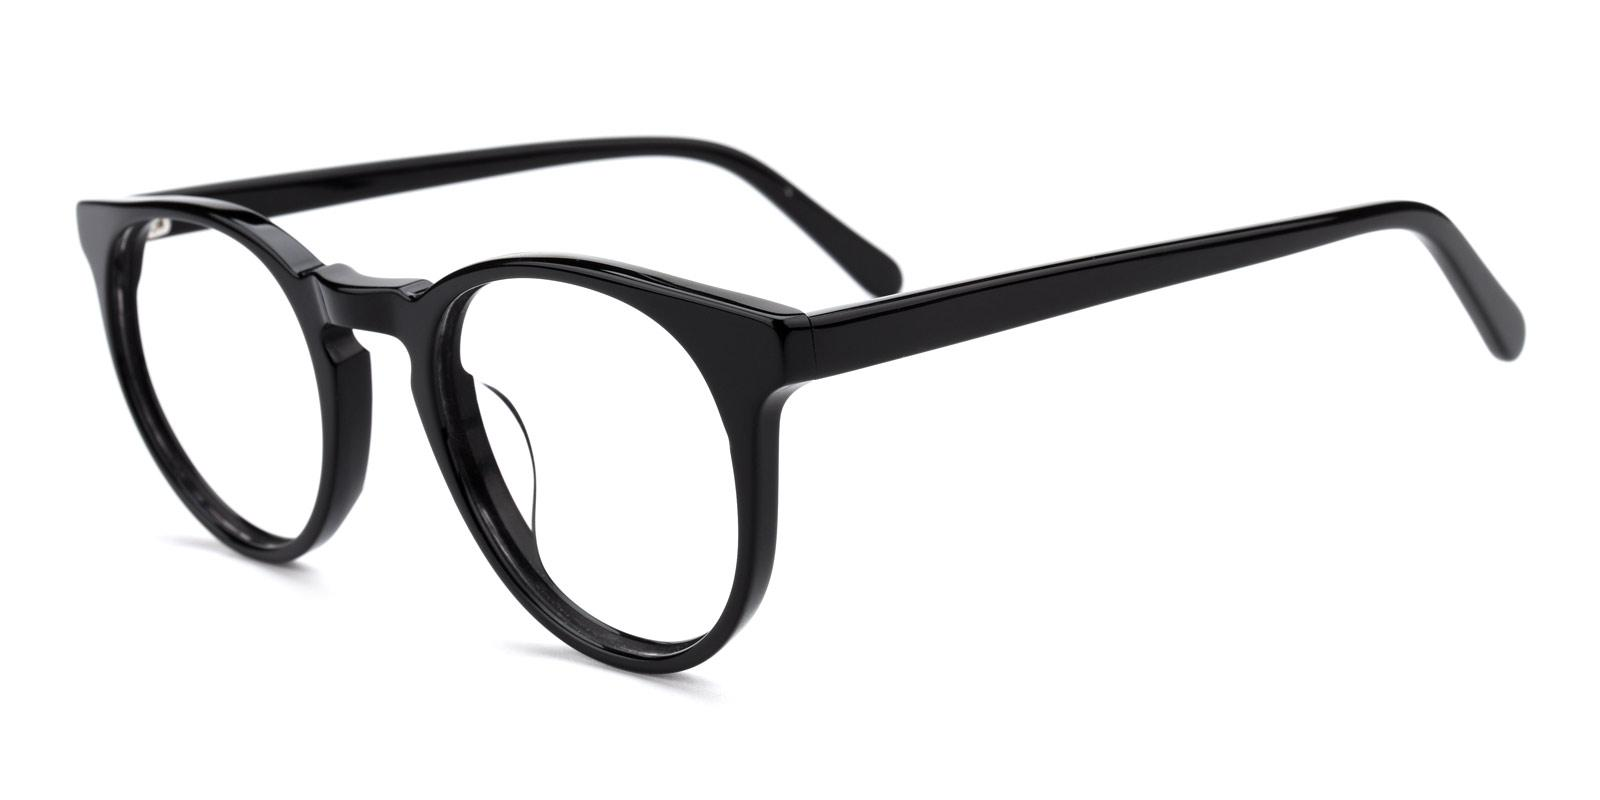 March-Black-Round-Acetate-Eyeglasses-additional1